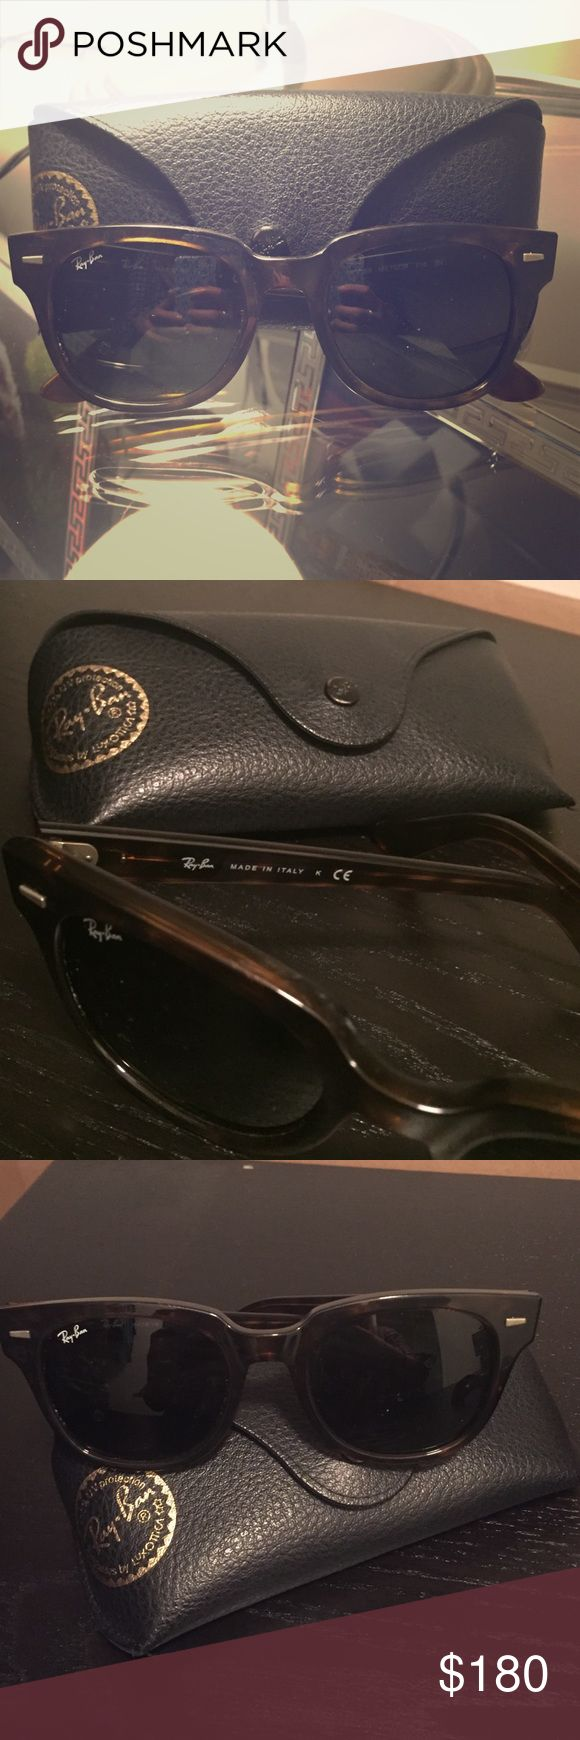 Ray Ban Meteor Sunglasses w/ case Ray Ban Meteor Sunglasses with authentic case. Tortoise shell frames Accessories Sunglasses